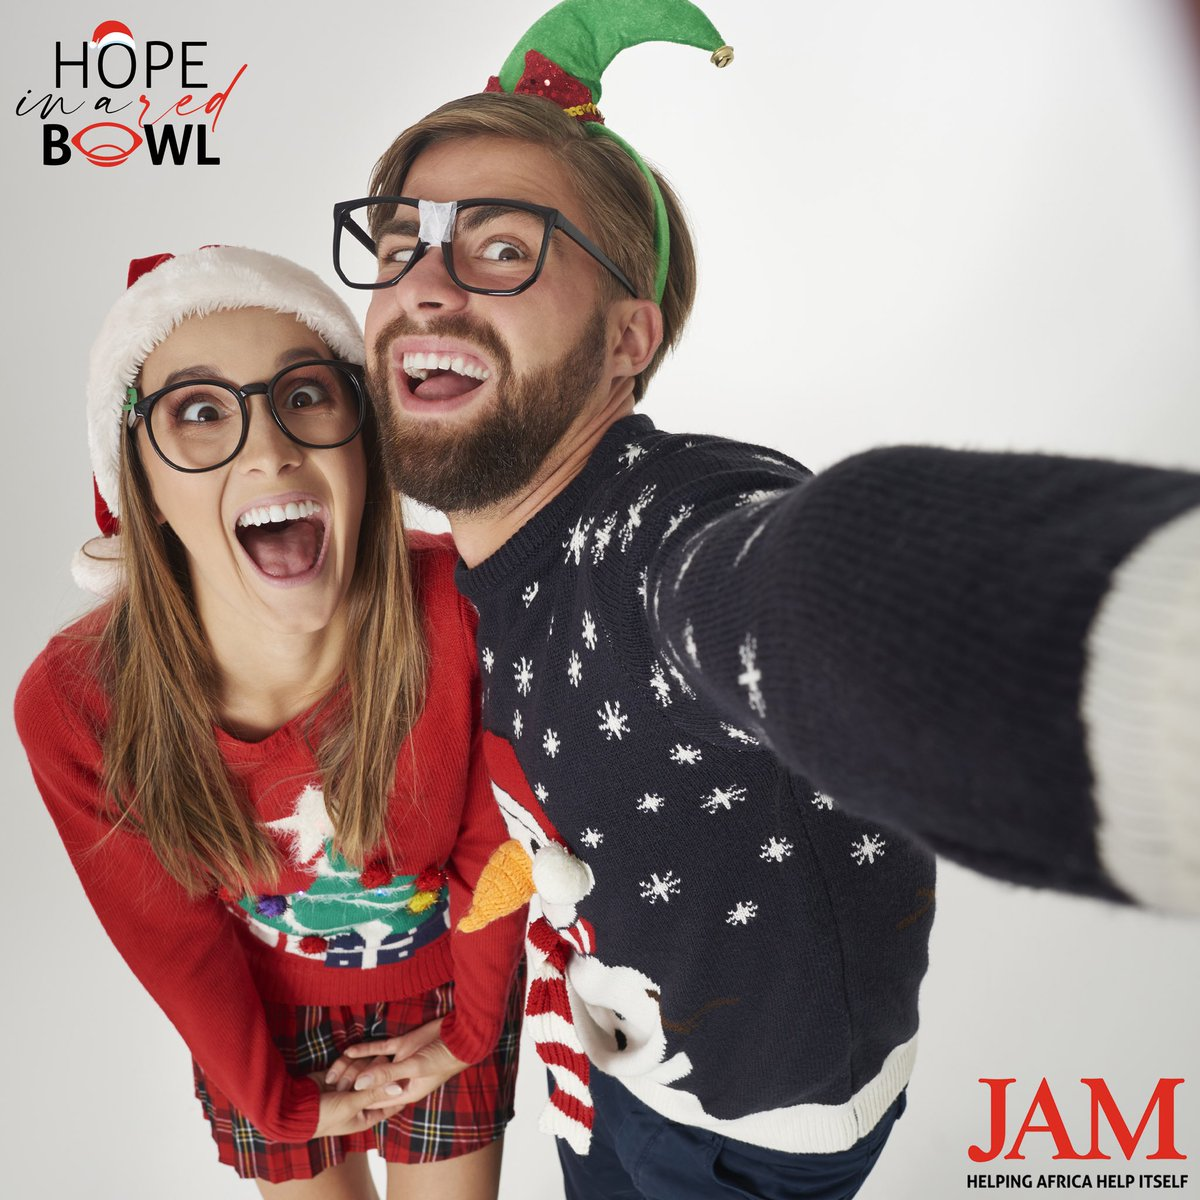 """Did you know it's #ChristmasJumperDay on the 11th of December⁉️ You could get your """"ugly jumpers"""" out and fundraise for #JAM with your colleagues or school friends this year❓Snap a selfie, donate & tag us in it too!! 📸 ... let's see just how ugly they come 😉  #HopeInARedBowl"""